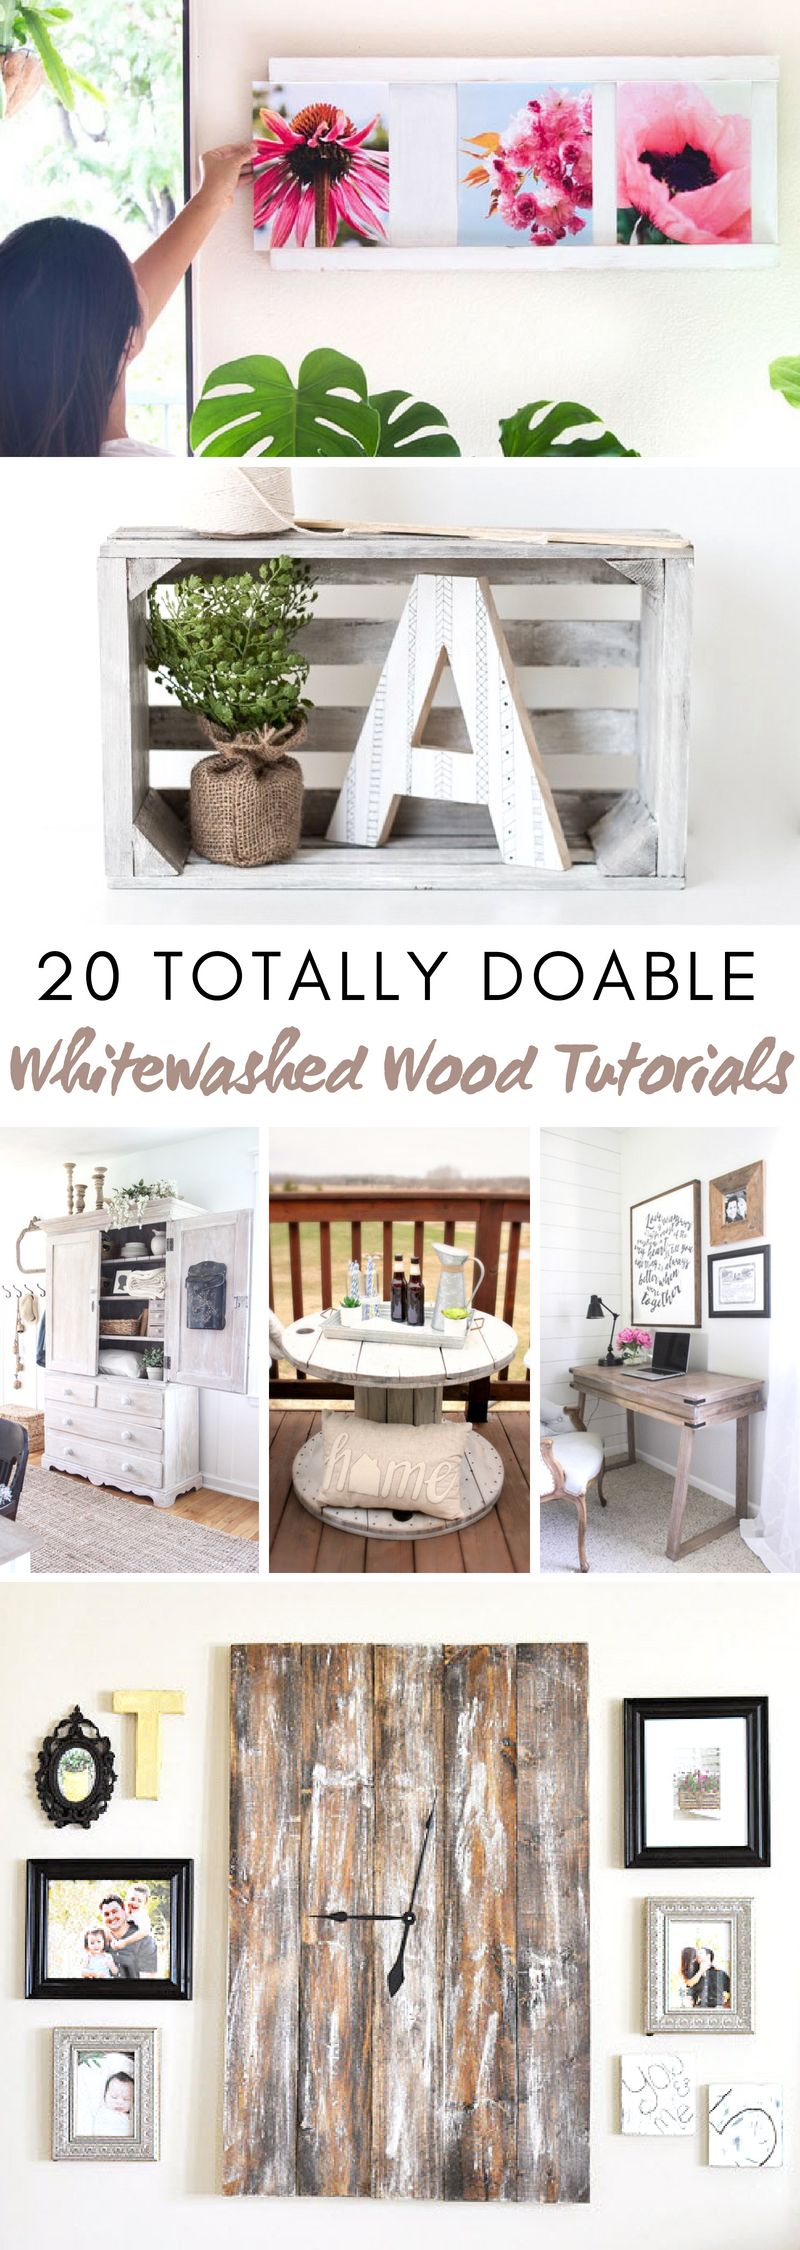 Whitewashed Wood Tutorials #fixerupper #whitewash #wood ...